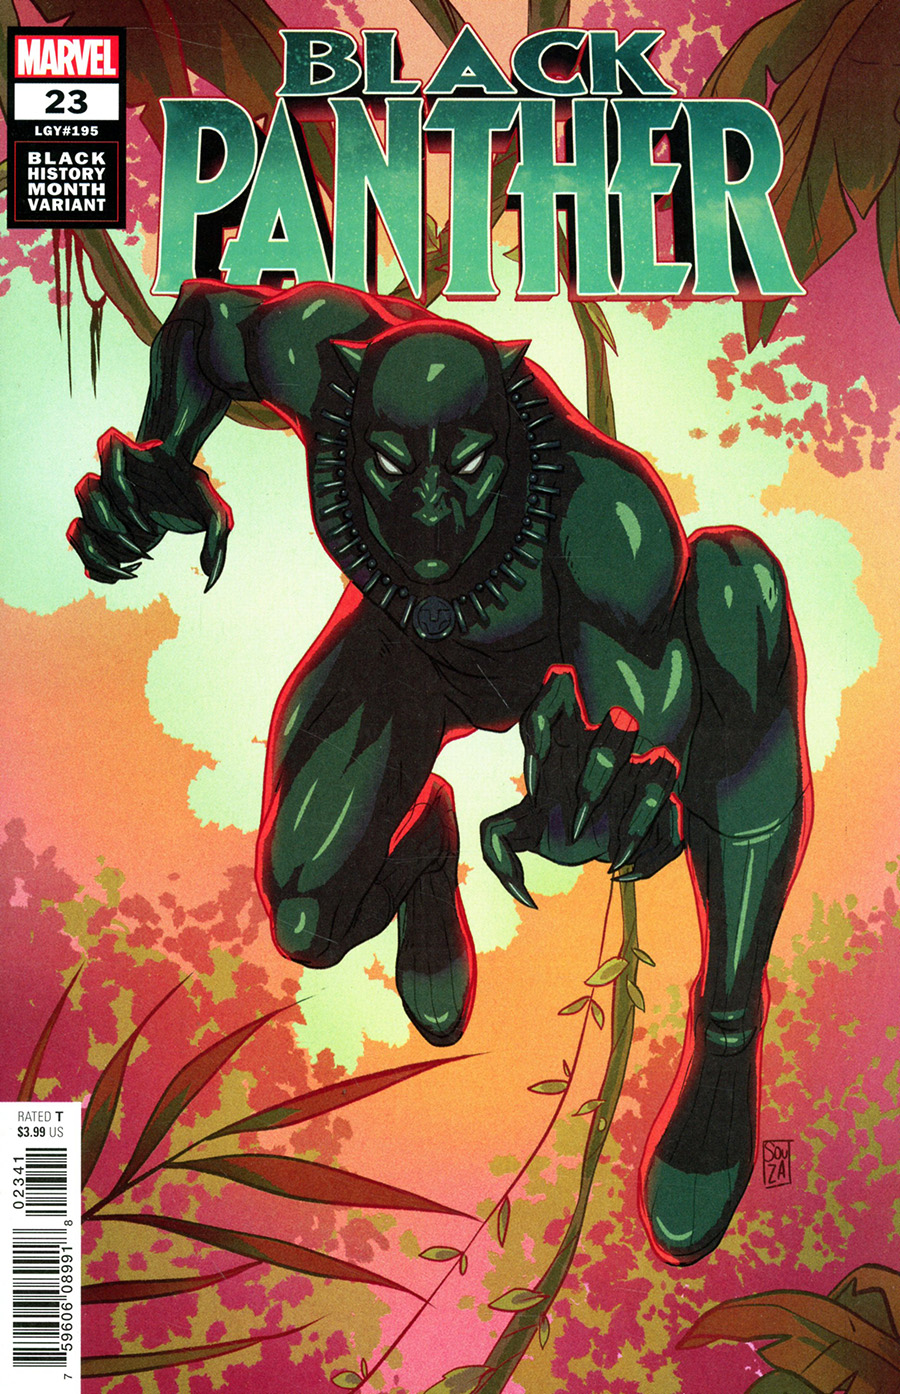 Black Panther Vol 7 #23 Cover B Variant Ernanda Souza Black History Month Cover